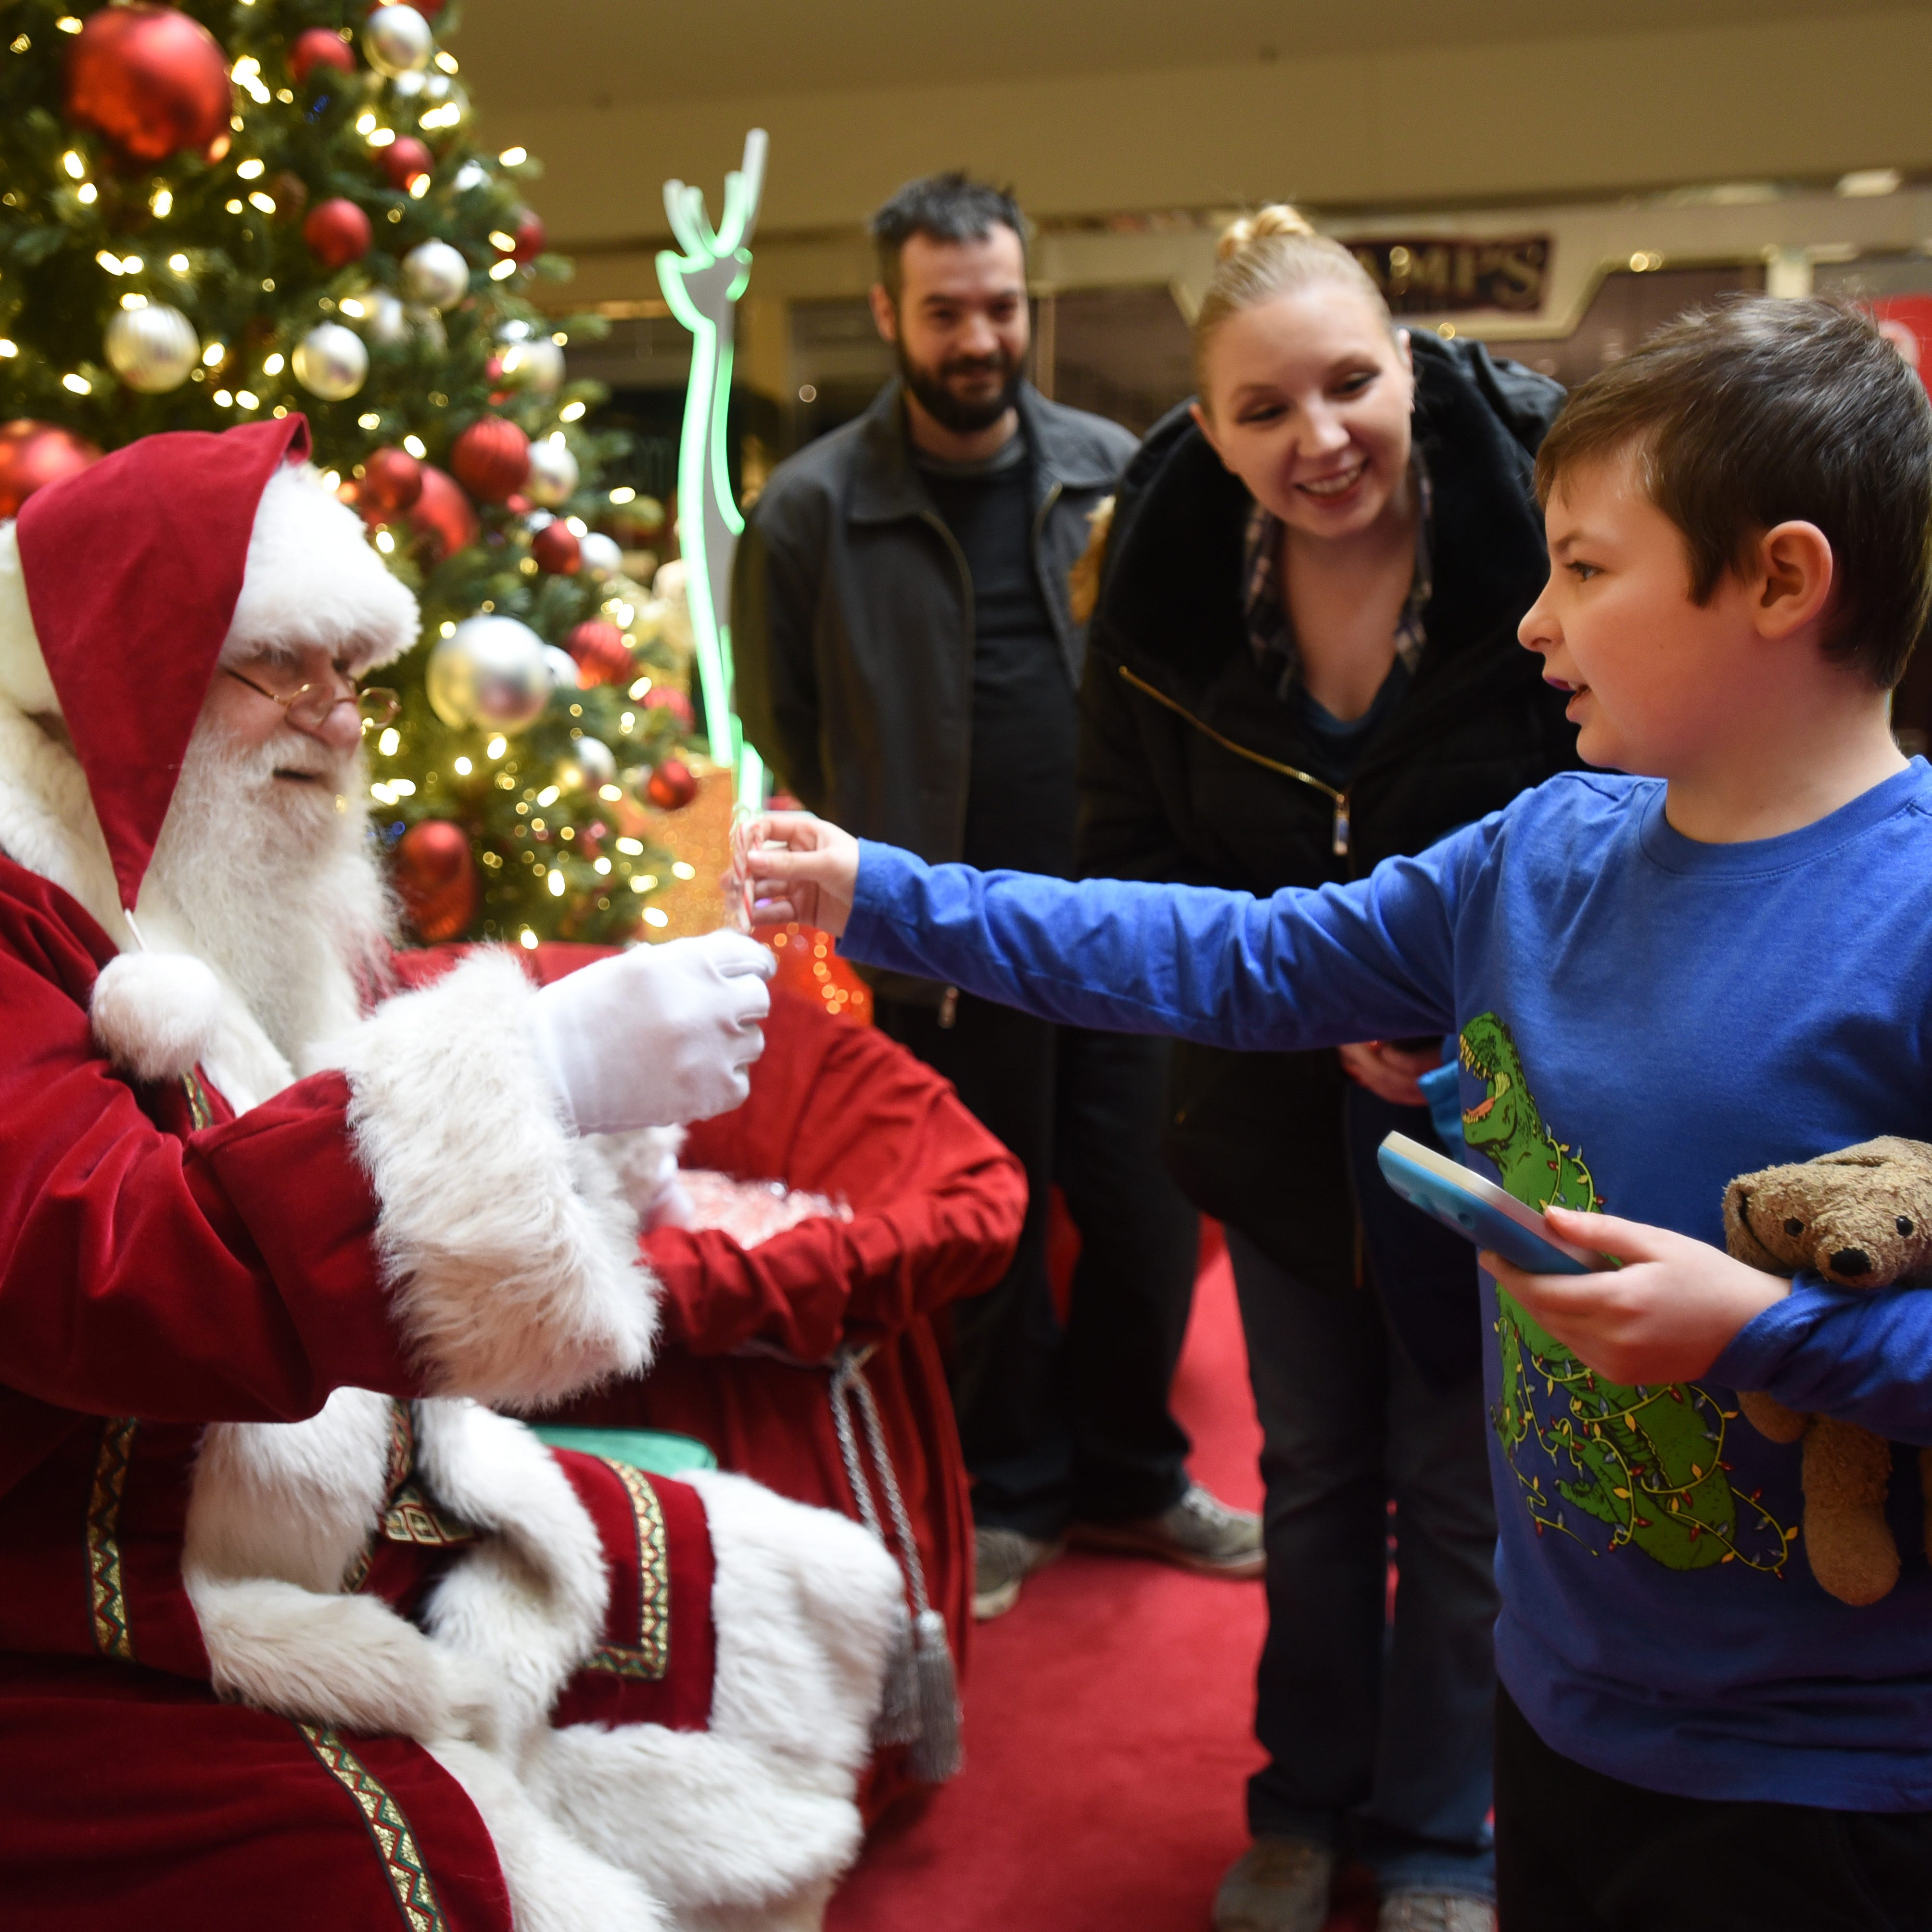 Santa's early morning time slots serve the special needs community at NJ mall